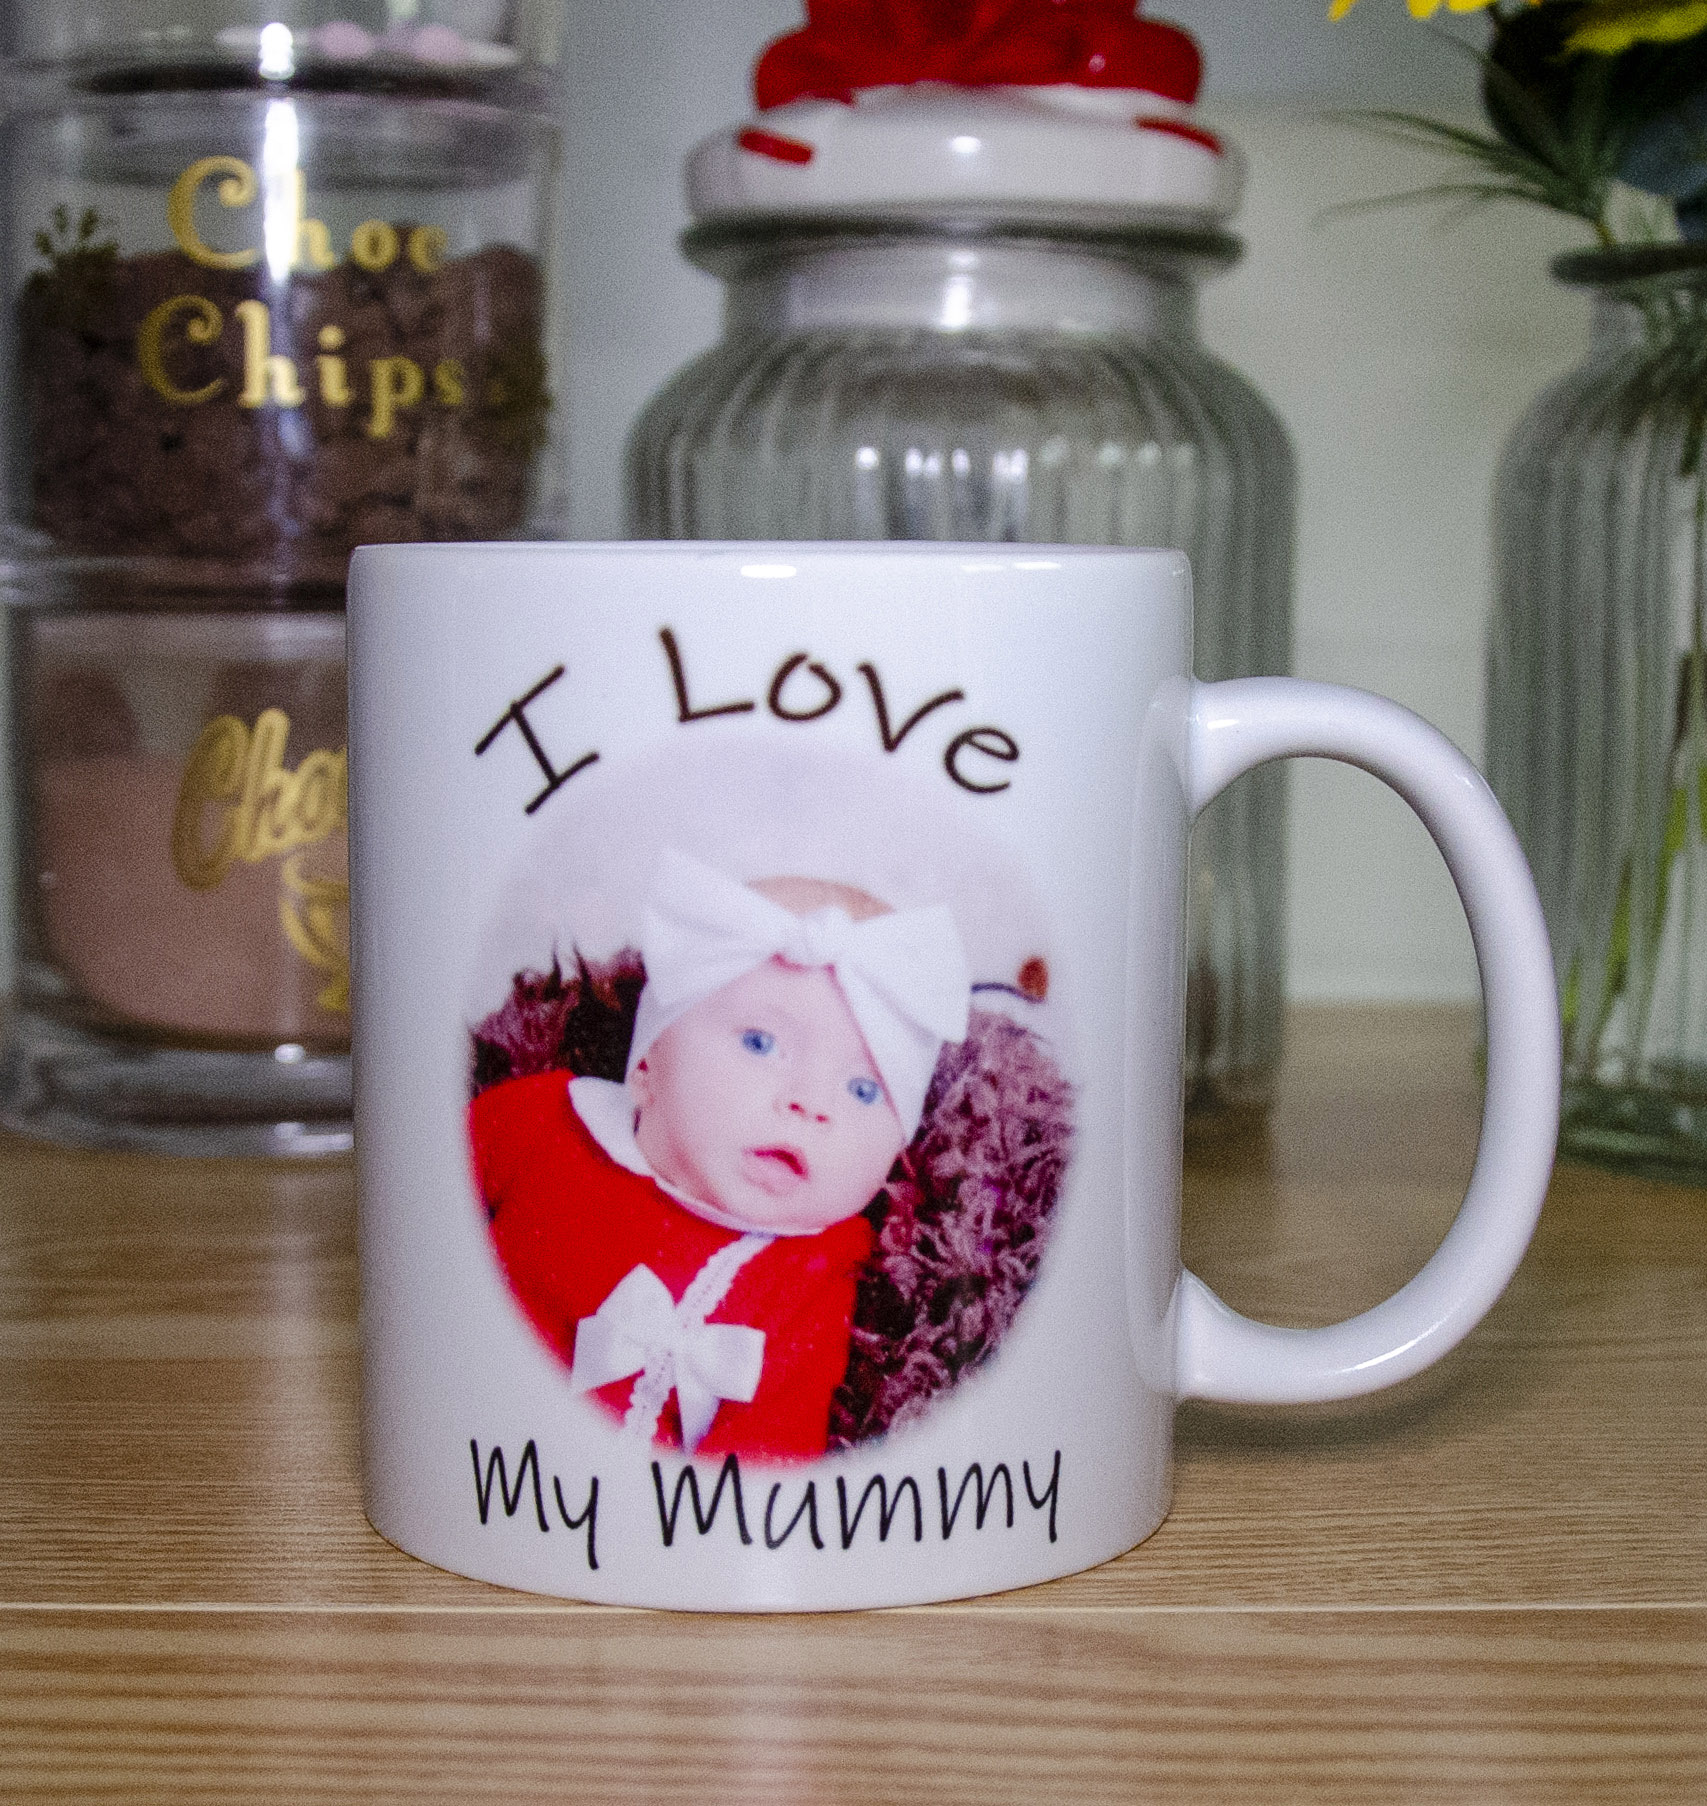 Personalised Unique Photographic 11oz Ceramic Mug Contains Your Own Image and Personalised Text